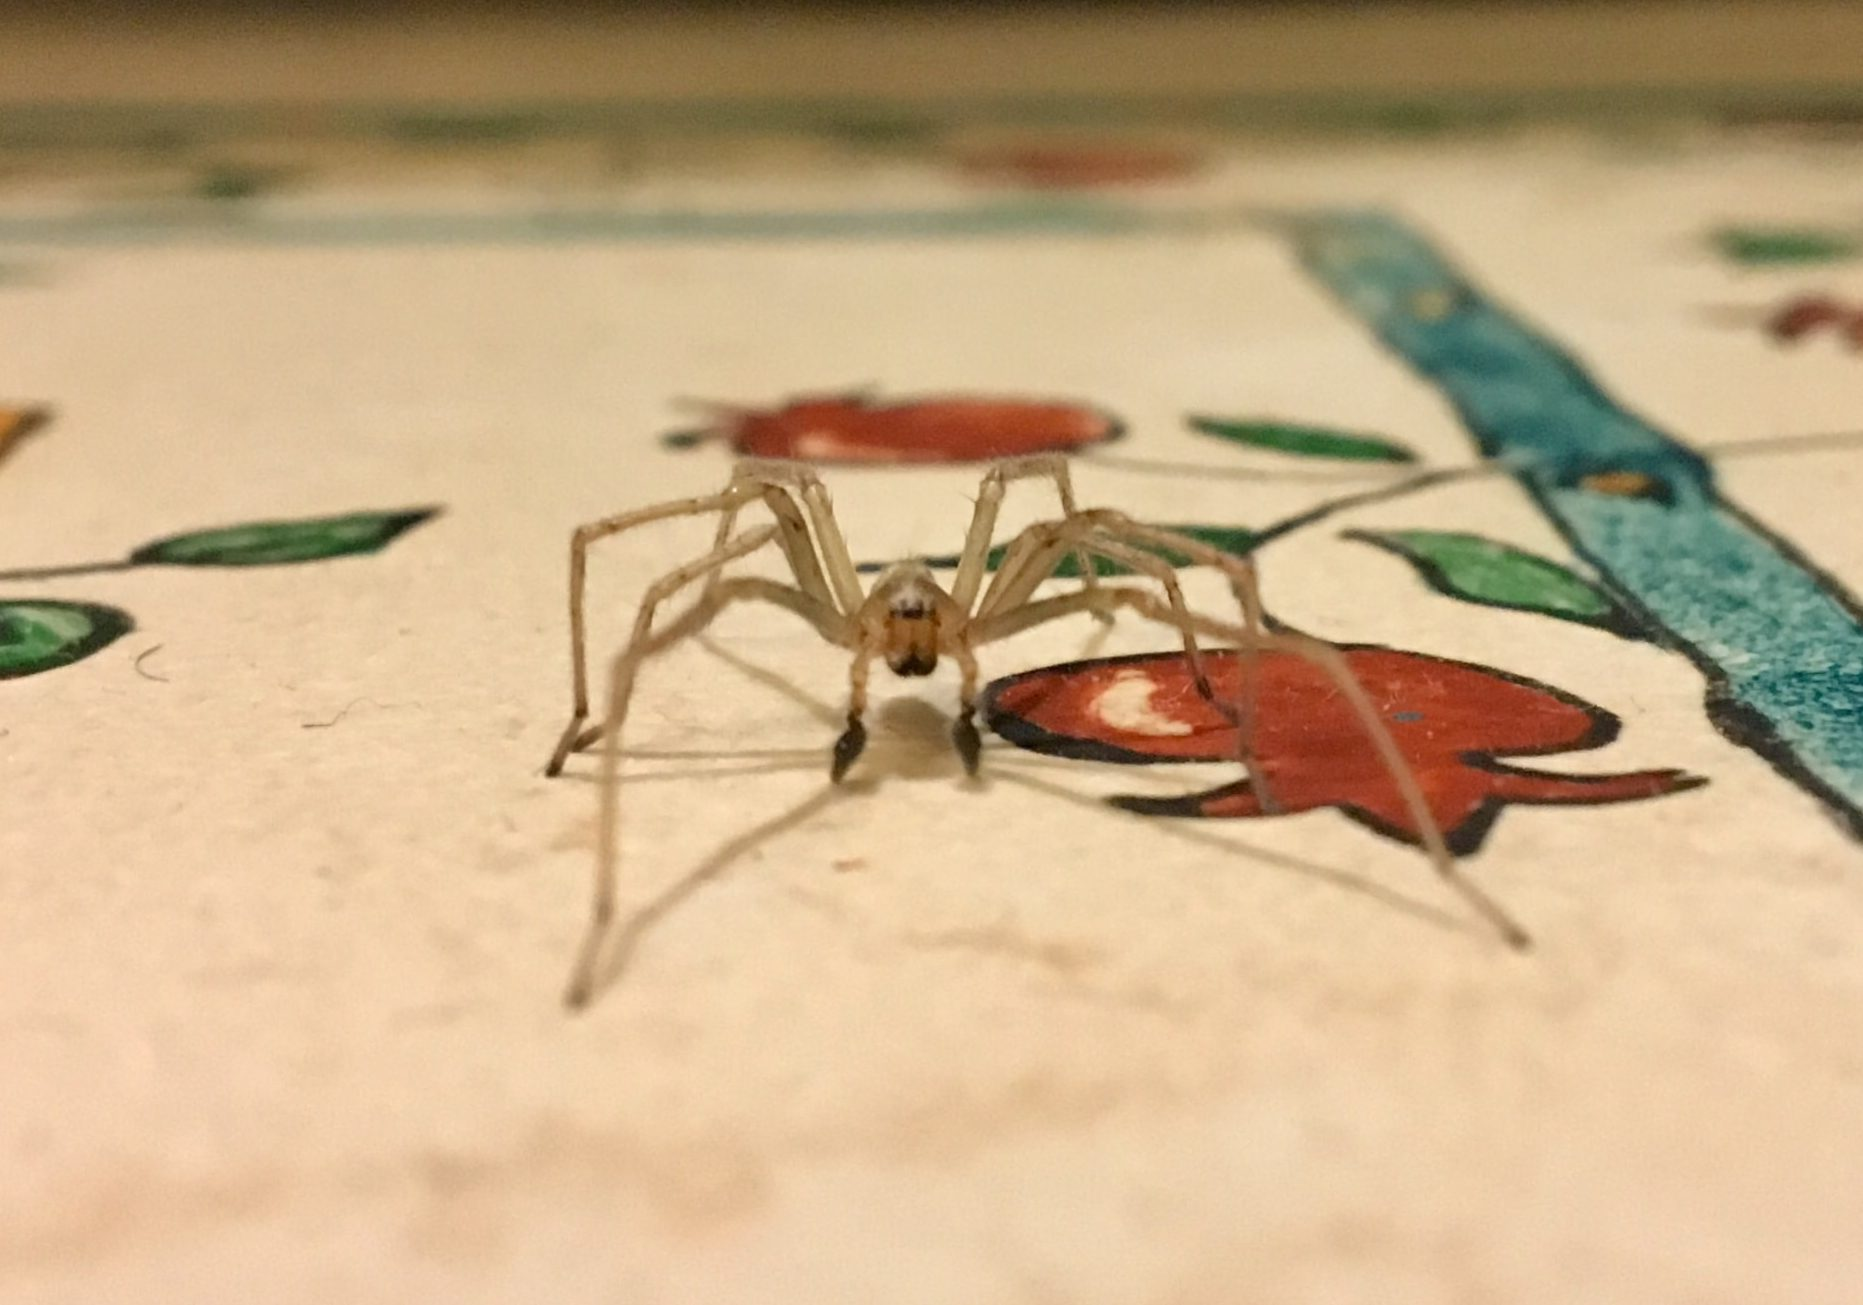 Picture of Cheiracanthium (Long-legged Sac Spiders) - Male - Eyes